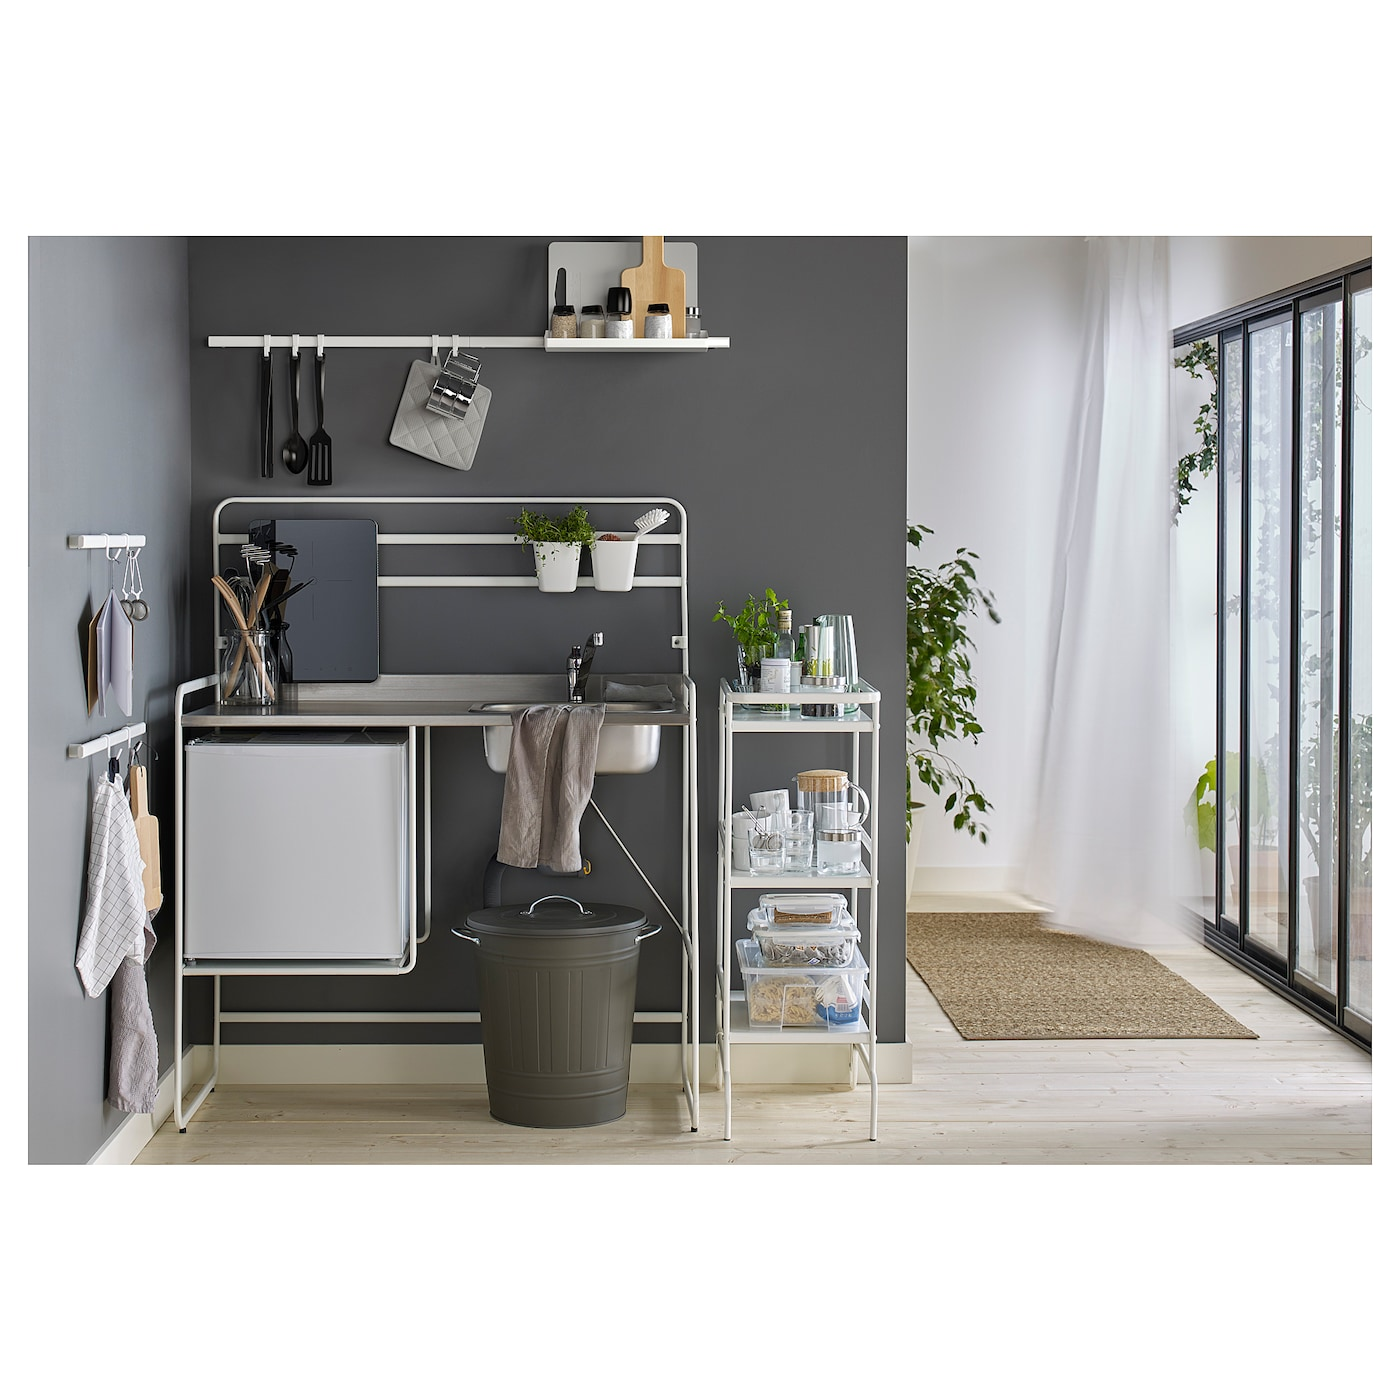 IKEA SUNNERSTA shelf Gives you extra storage in your kitchen.  Can be hung on SUNNERSTA rail.